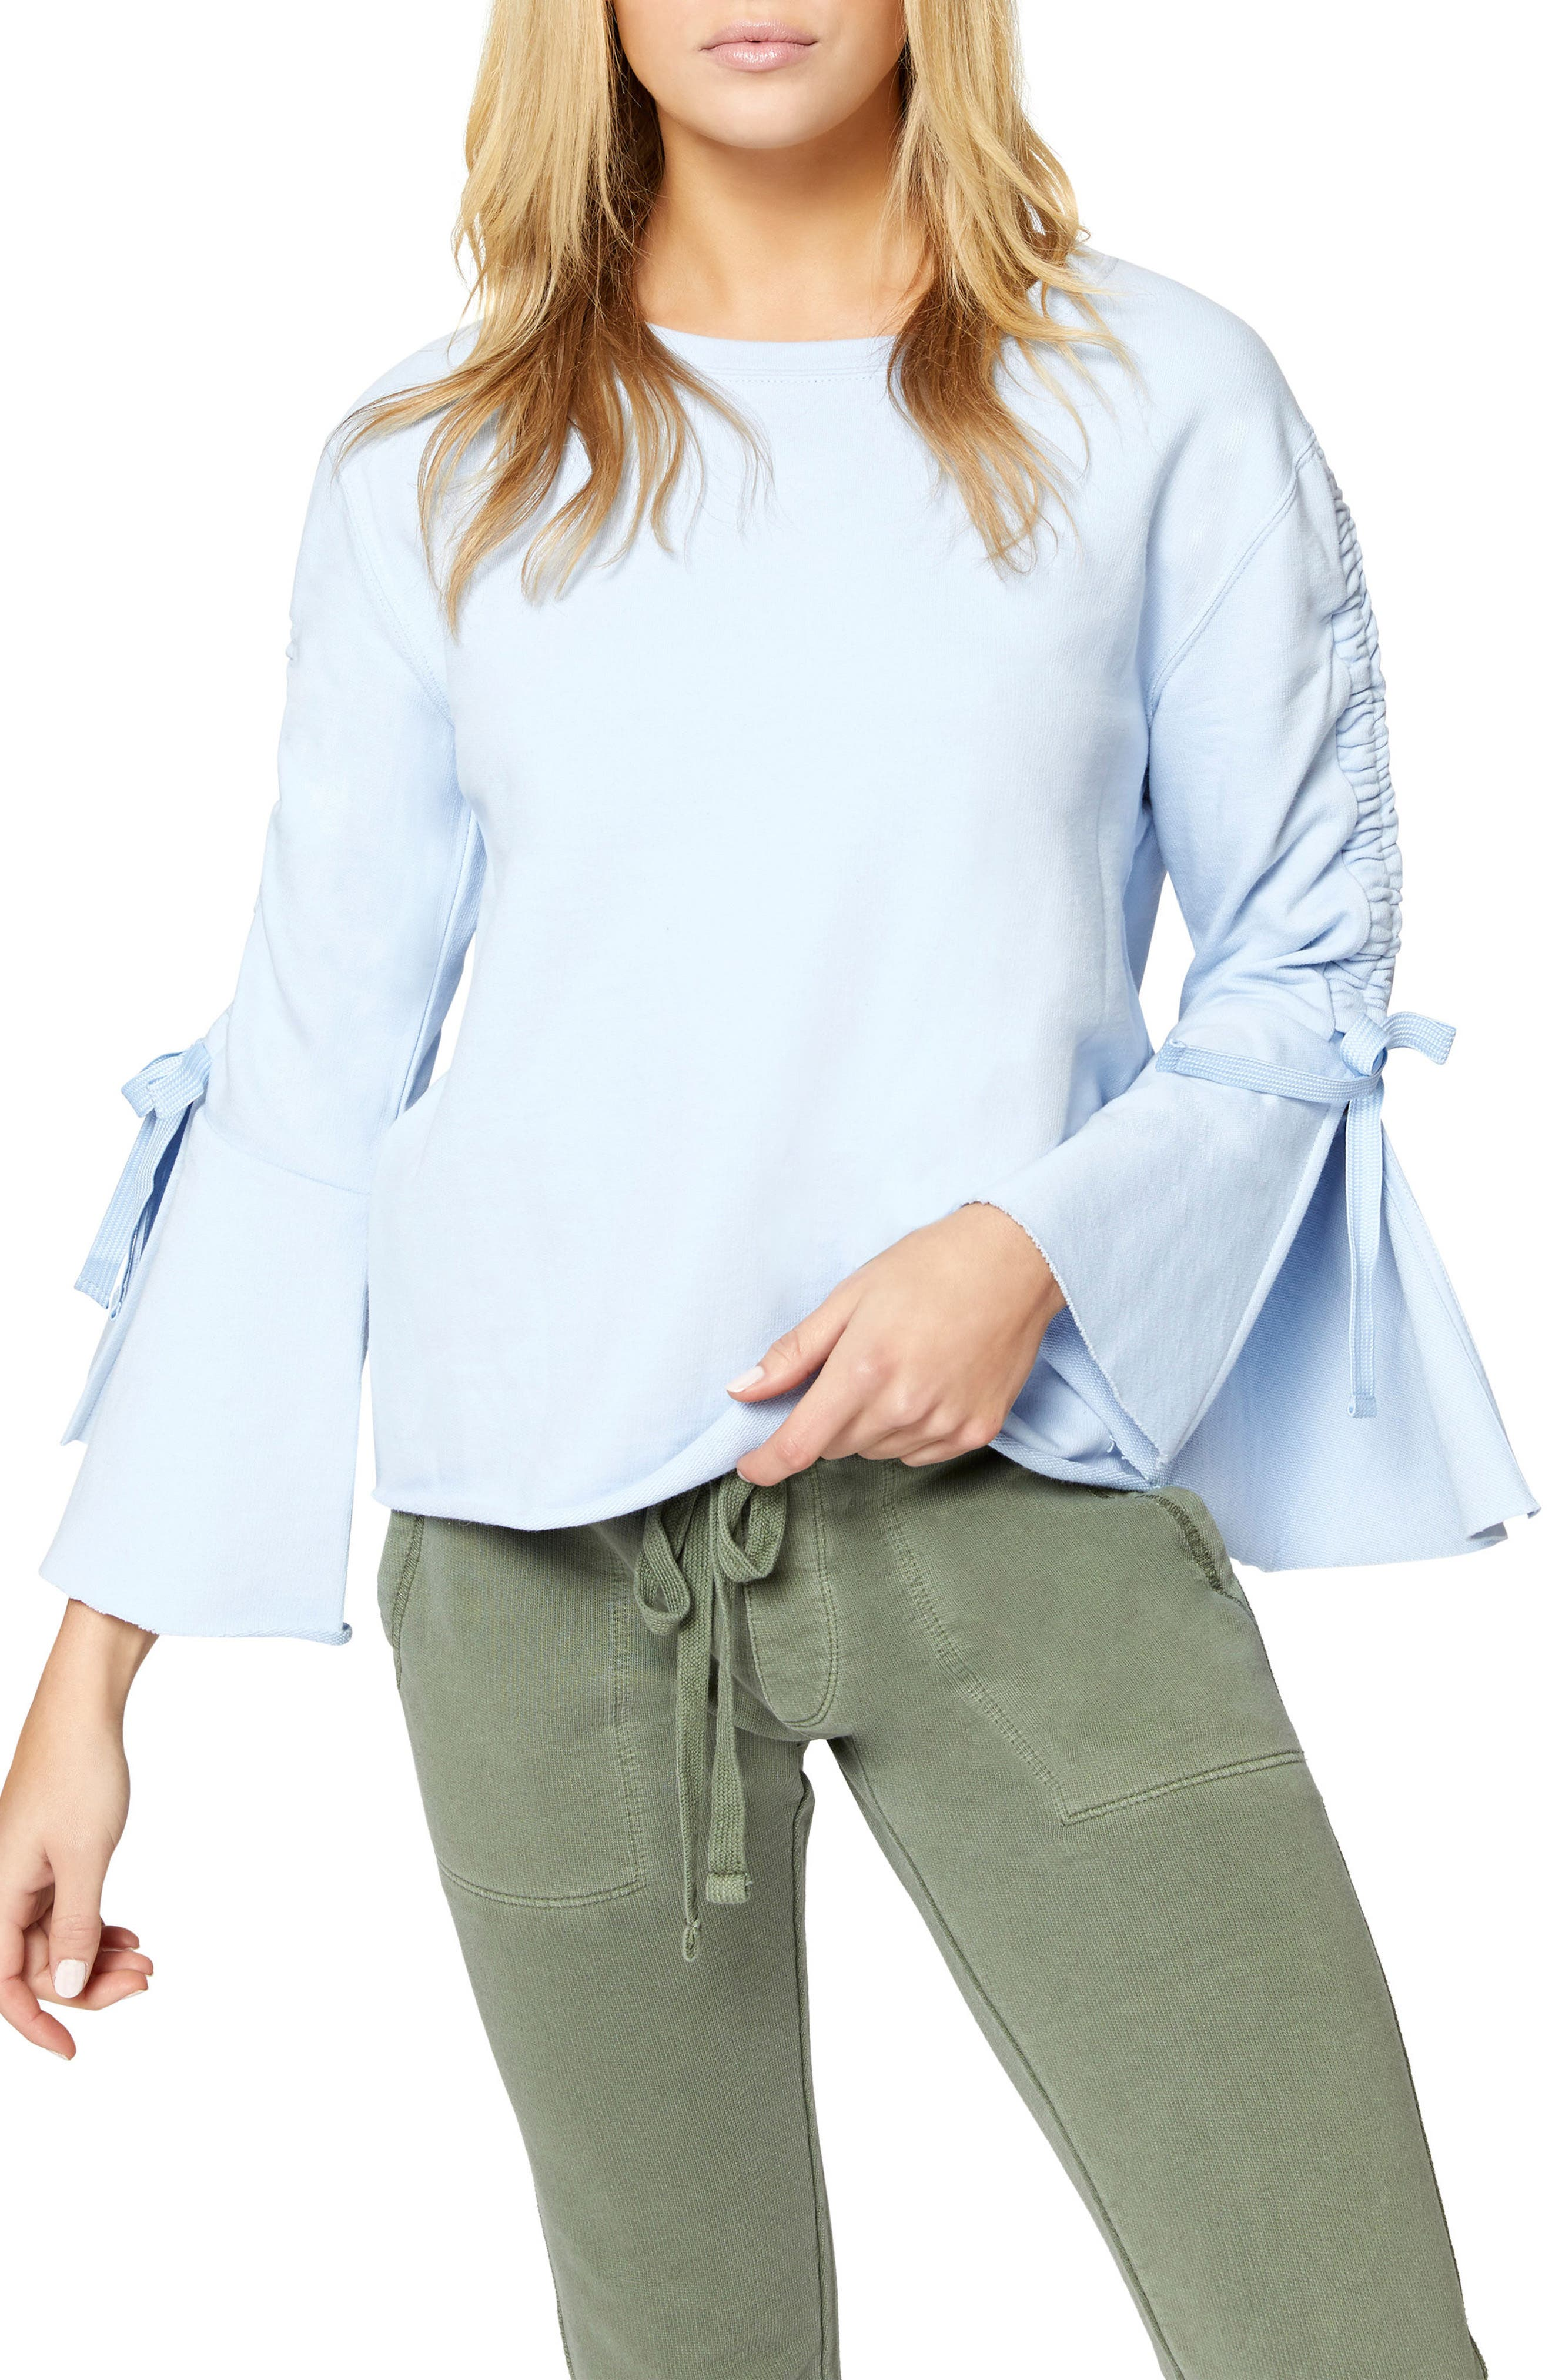 Upper West Bell Sleeve Sweatshirt,                         Main,                         color, Bluebell